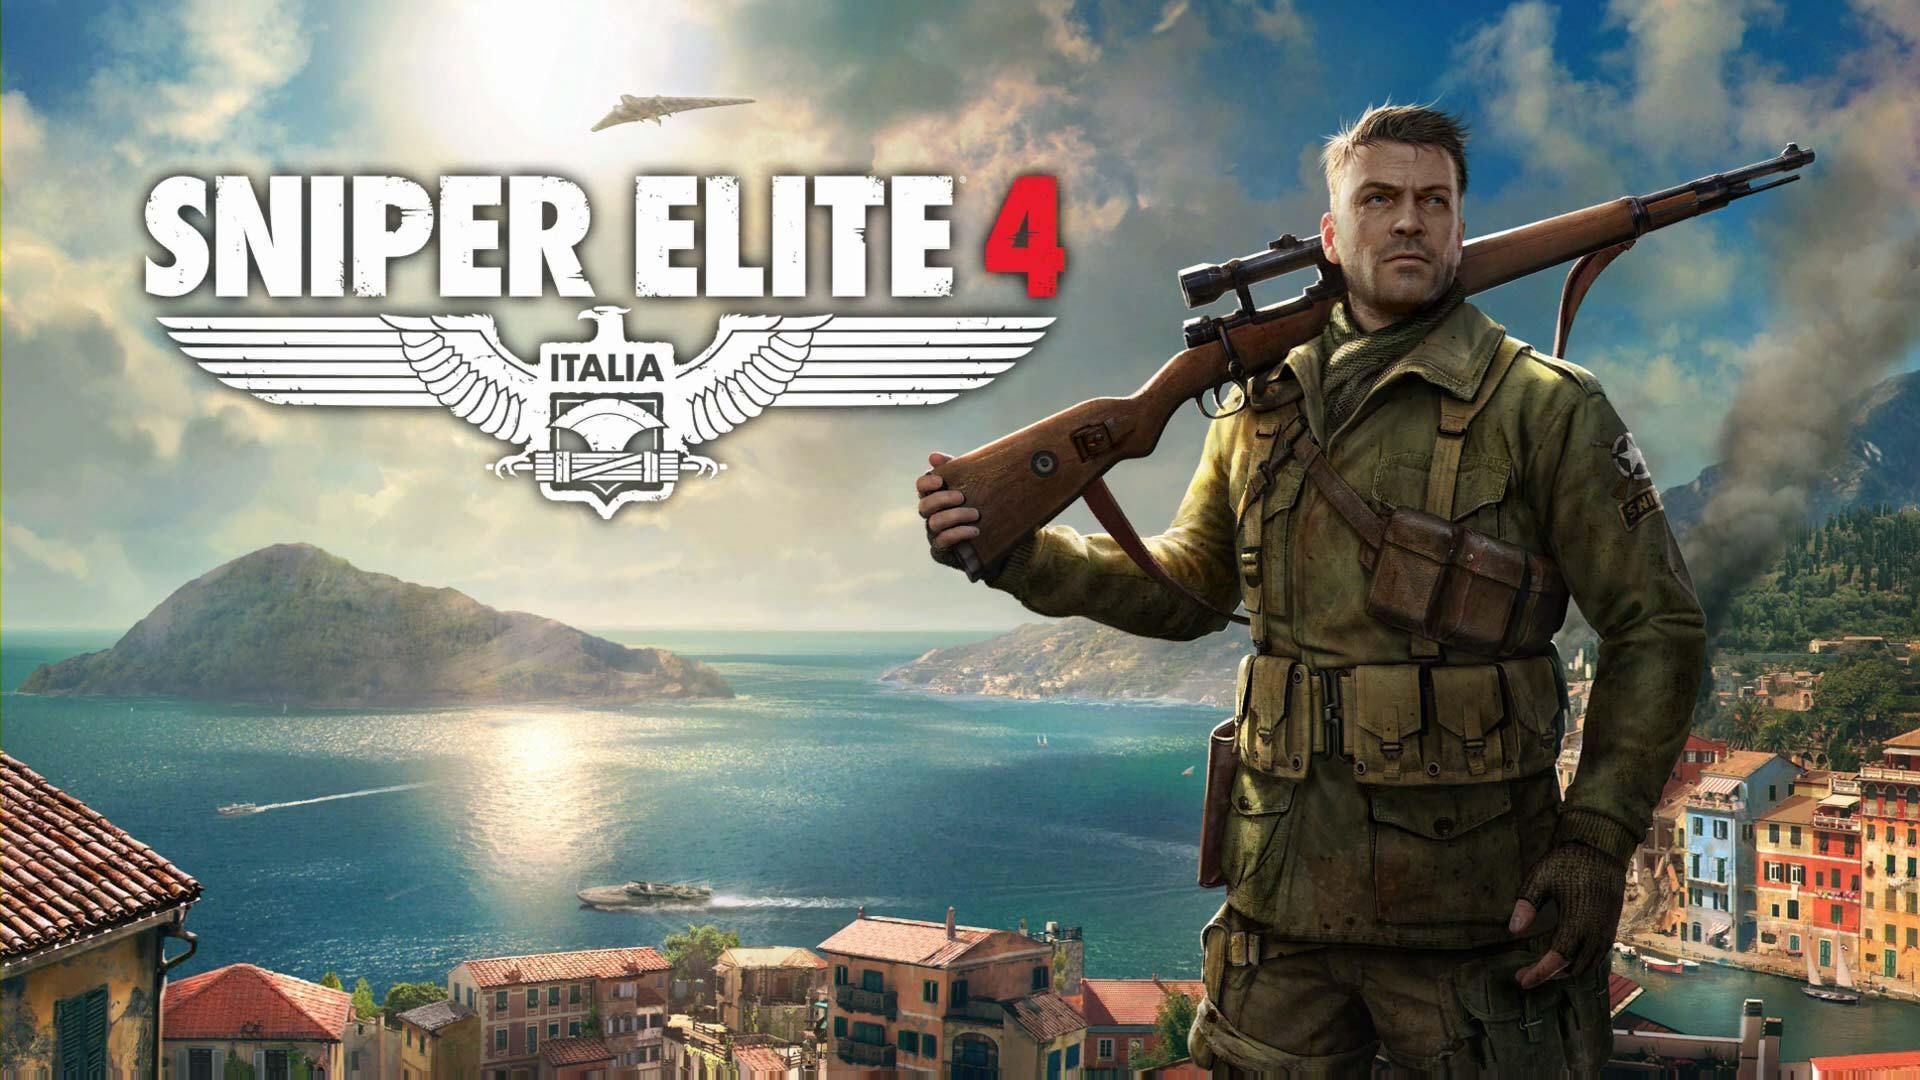 sniper elite 4 wallpaper   Geeks Under Grace 1920x1080